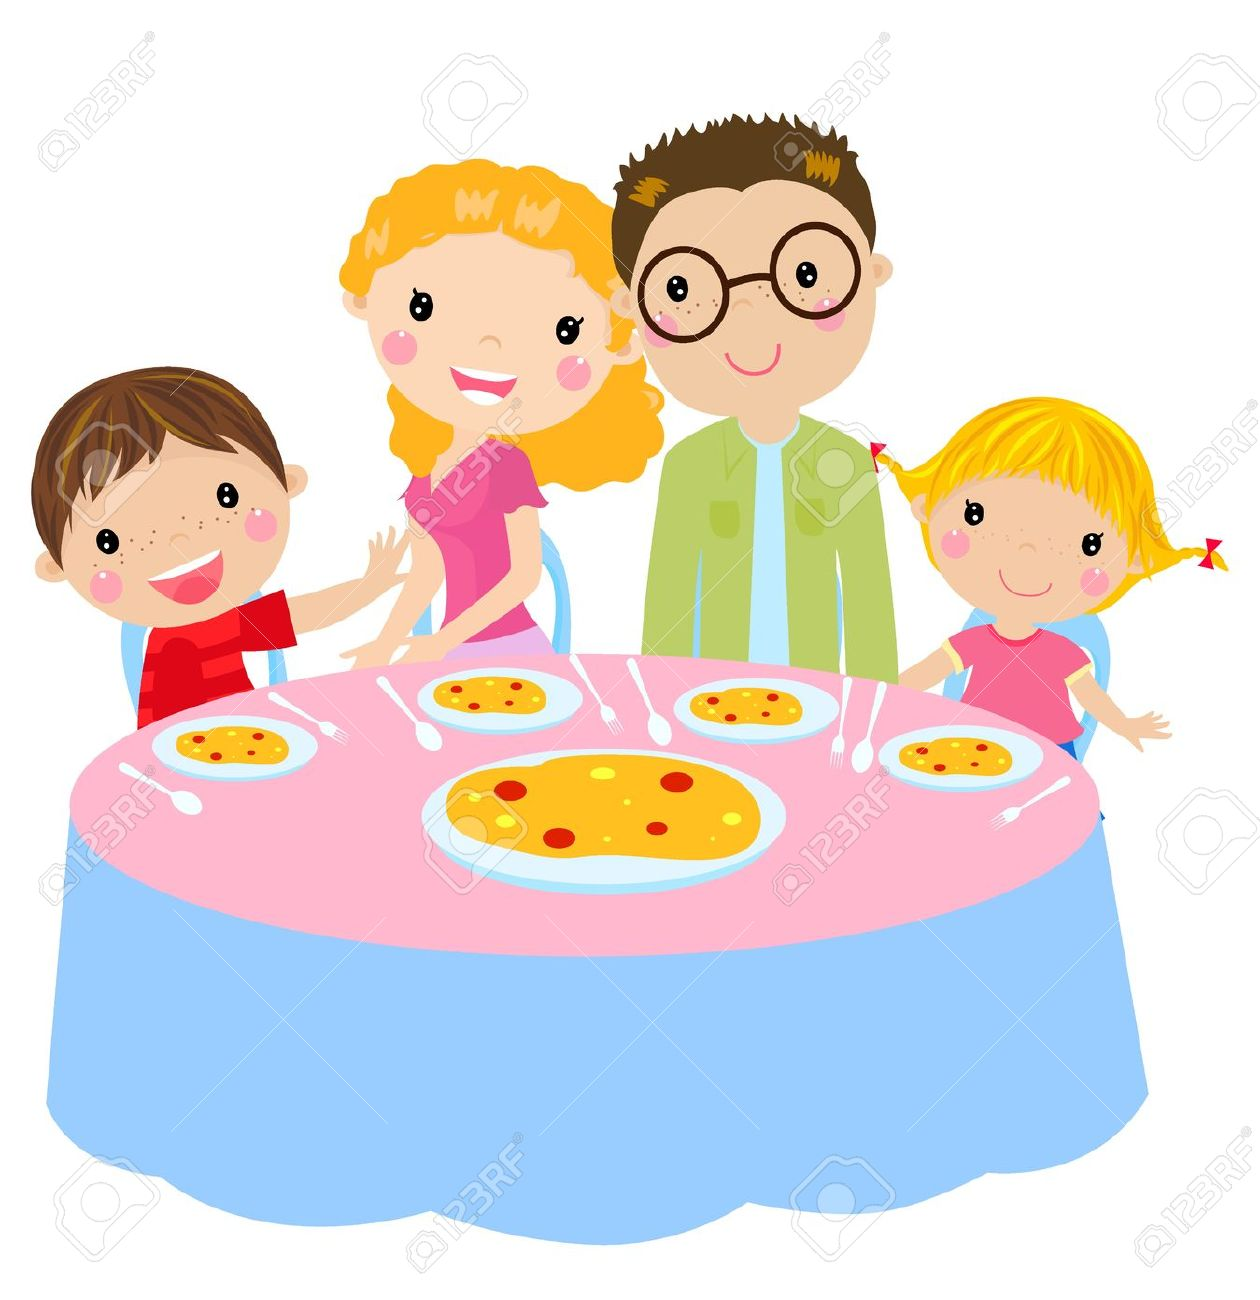 Family eating lunch clipart.